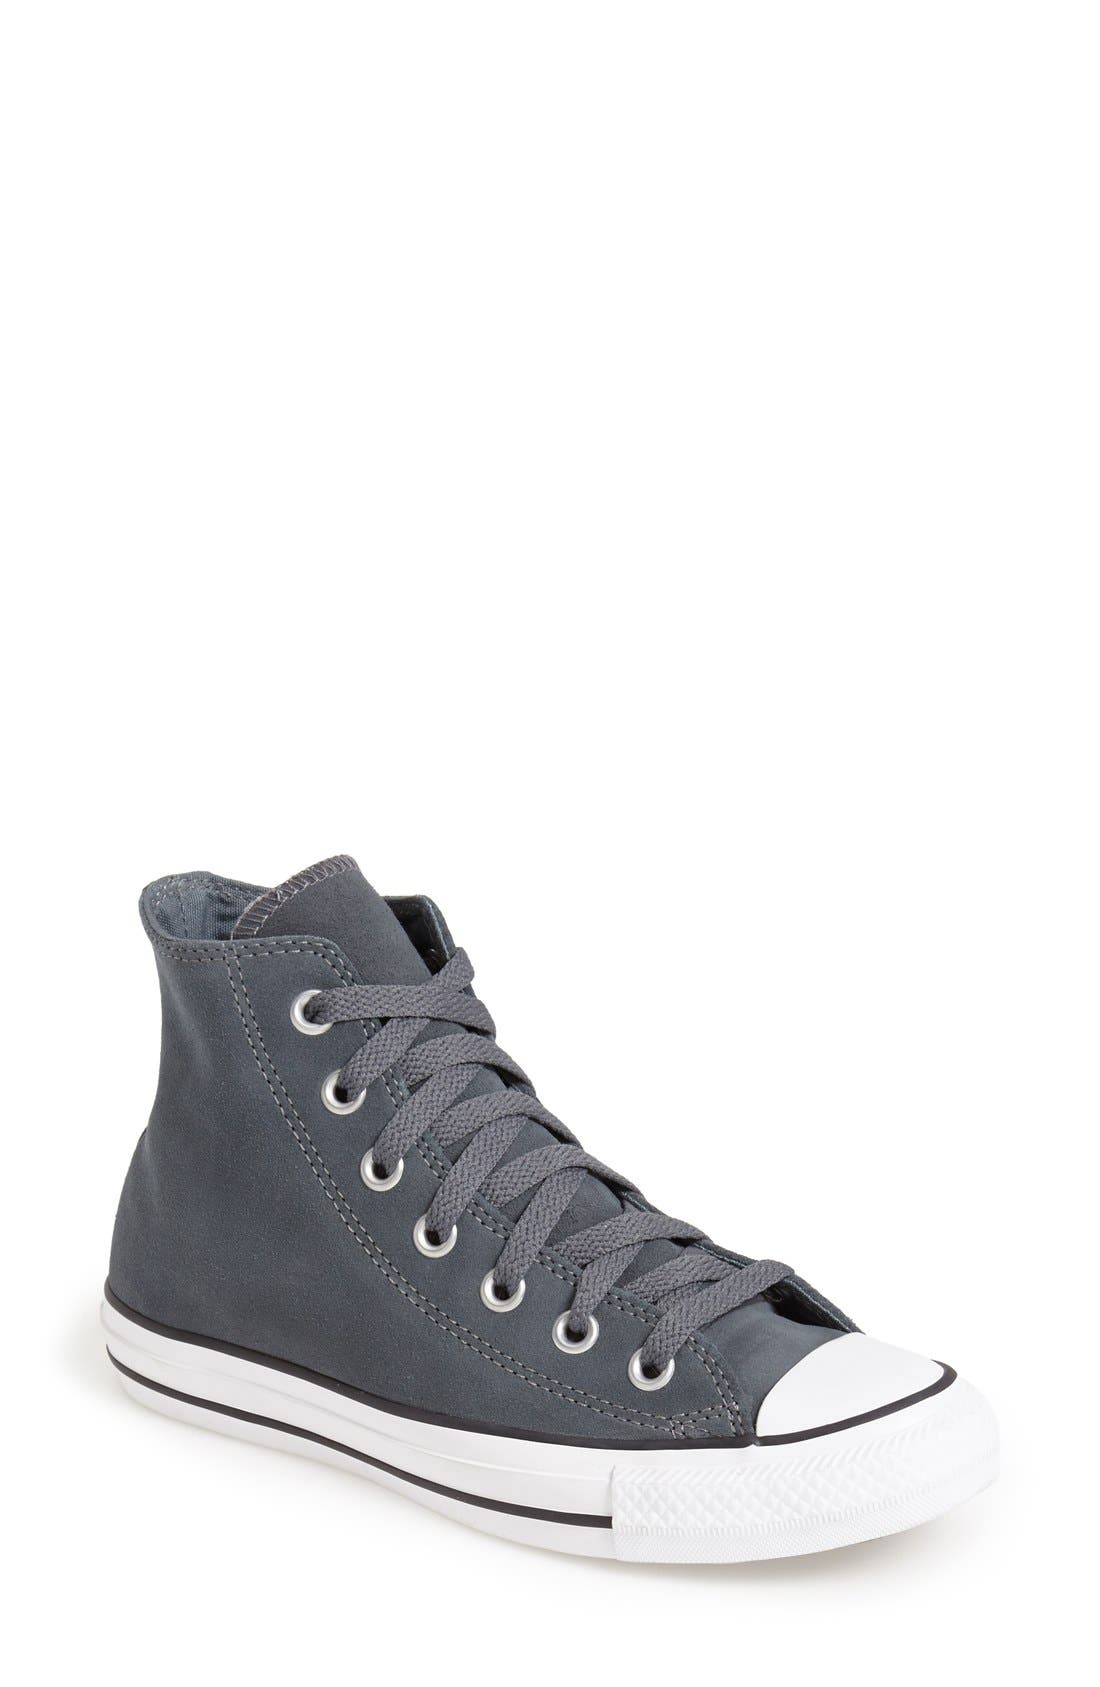 Main Image - Converse Chuck Taylor® All Star® Suede High Top Sneaker (Women)